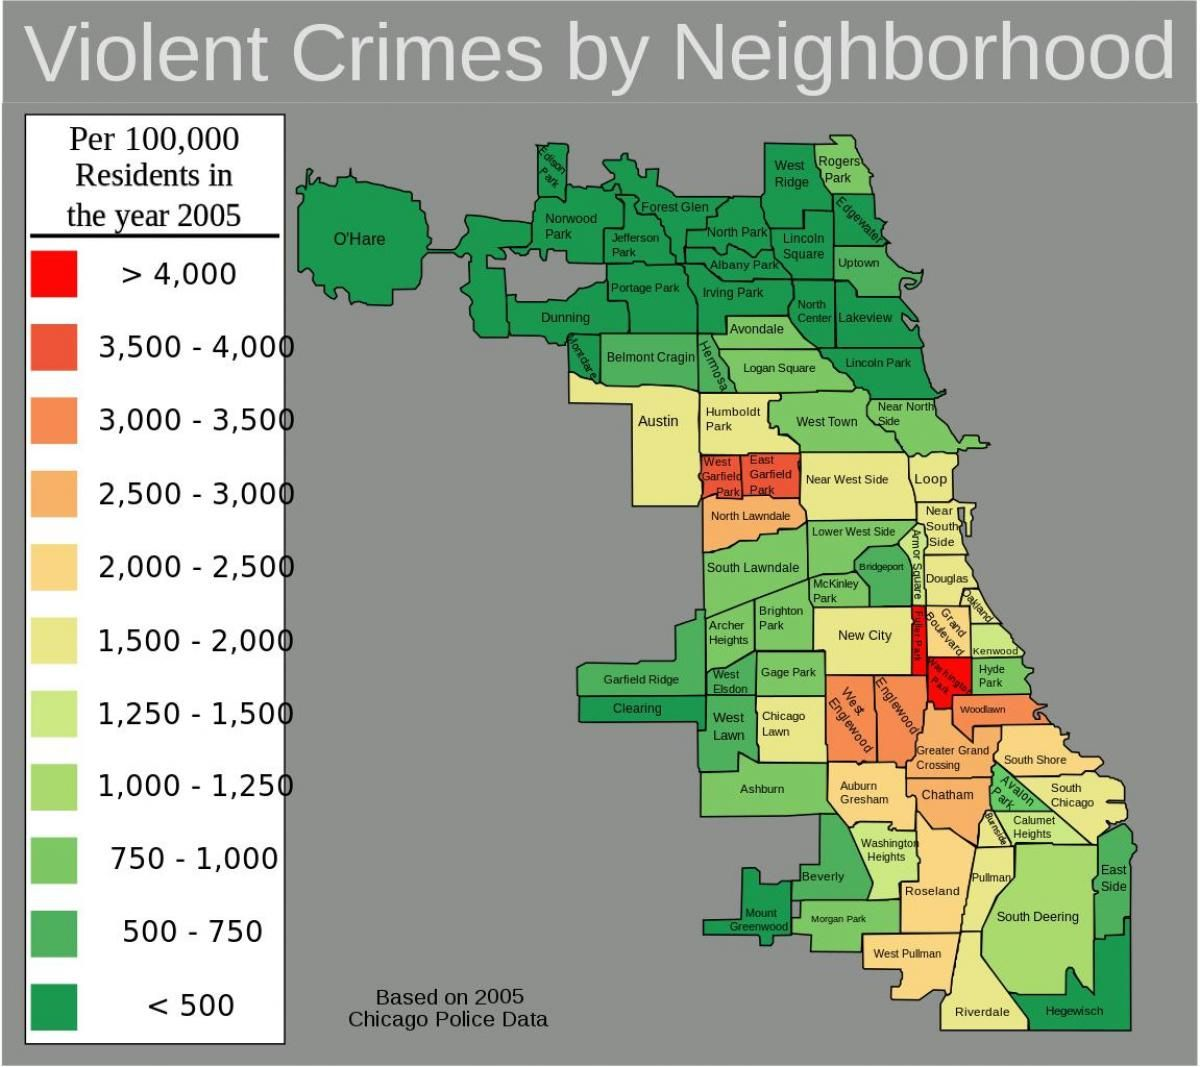 bad areas of Chicago map | Sweet Home Chicago in 2019 | Chicago map ...